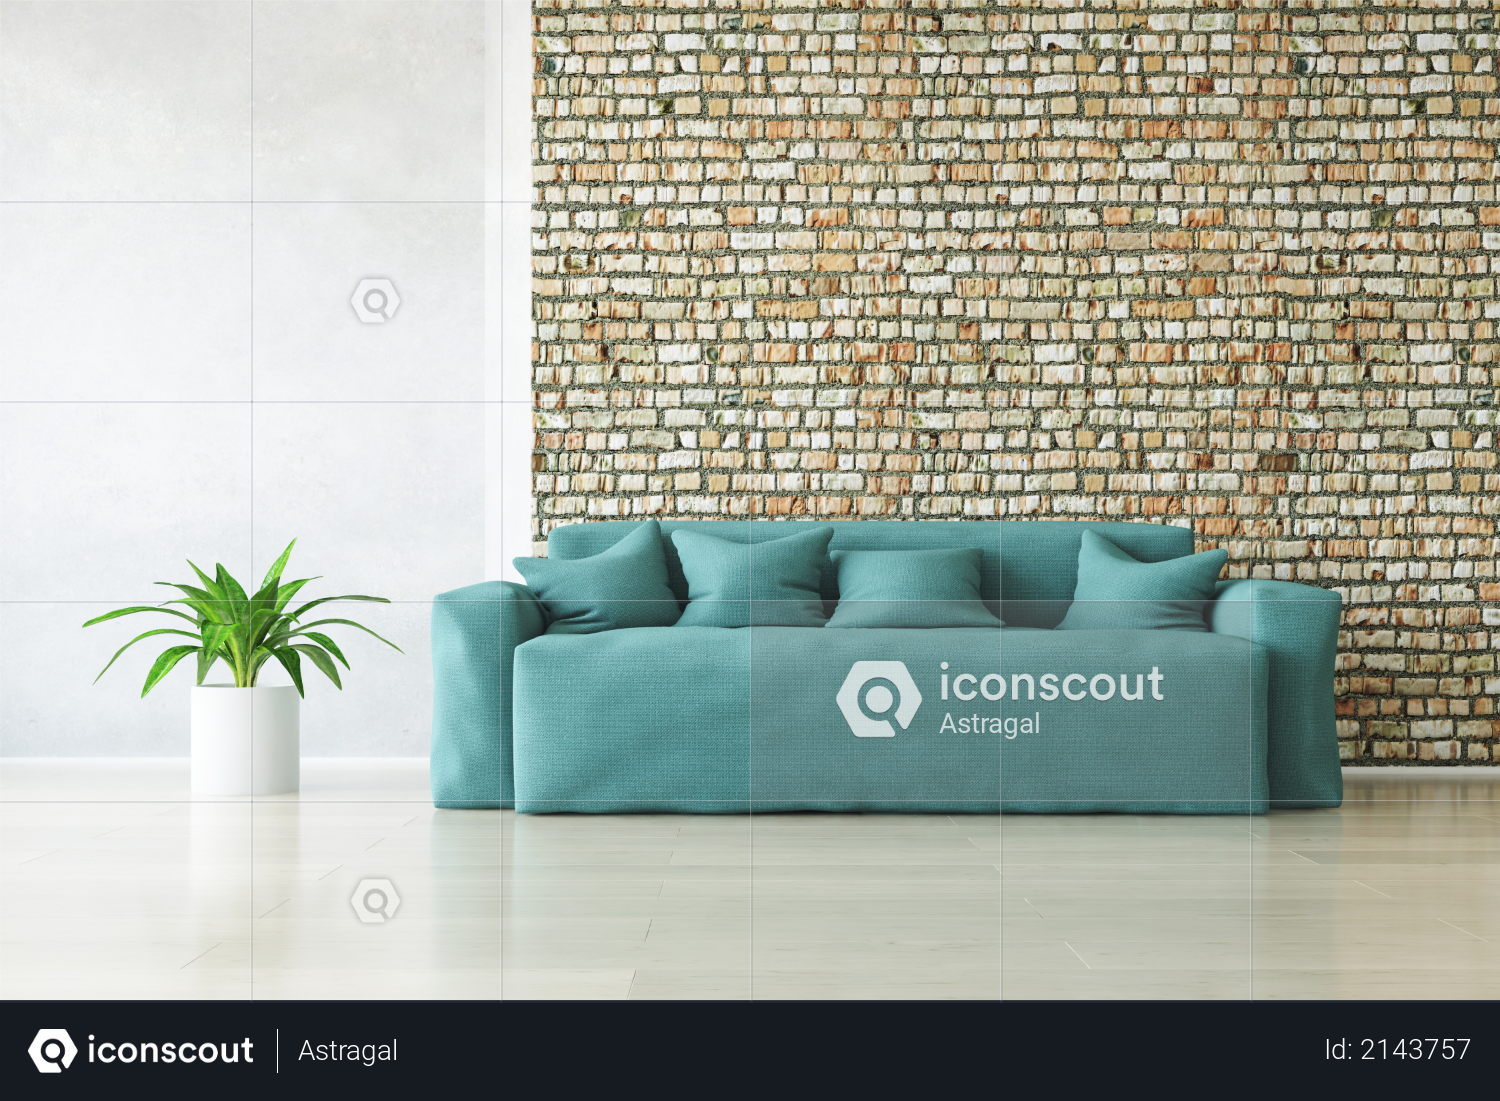 Modern Turquoise Sofa with Pillows and Plant near the Stylish Brick Wall on the Wooden Floor, Fashion Decor, Living Room Conceptual Style, 3D Rendering Trendy Art Graphic Design Photo